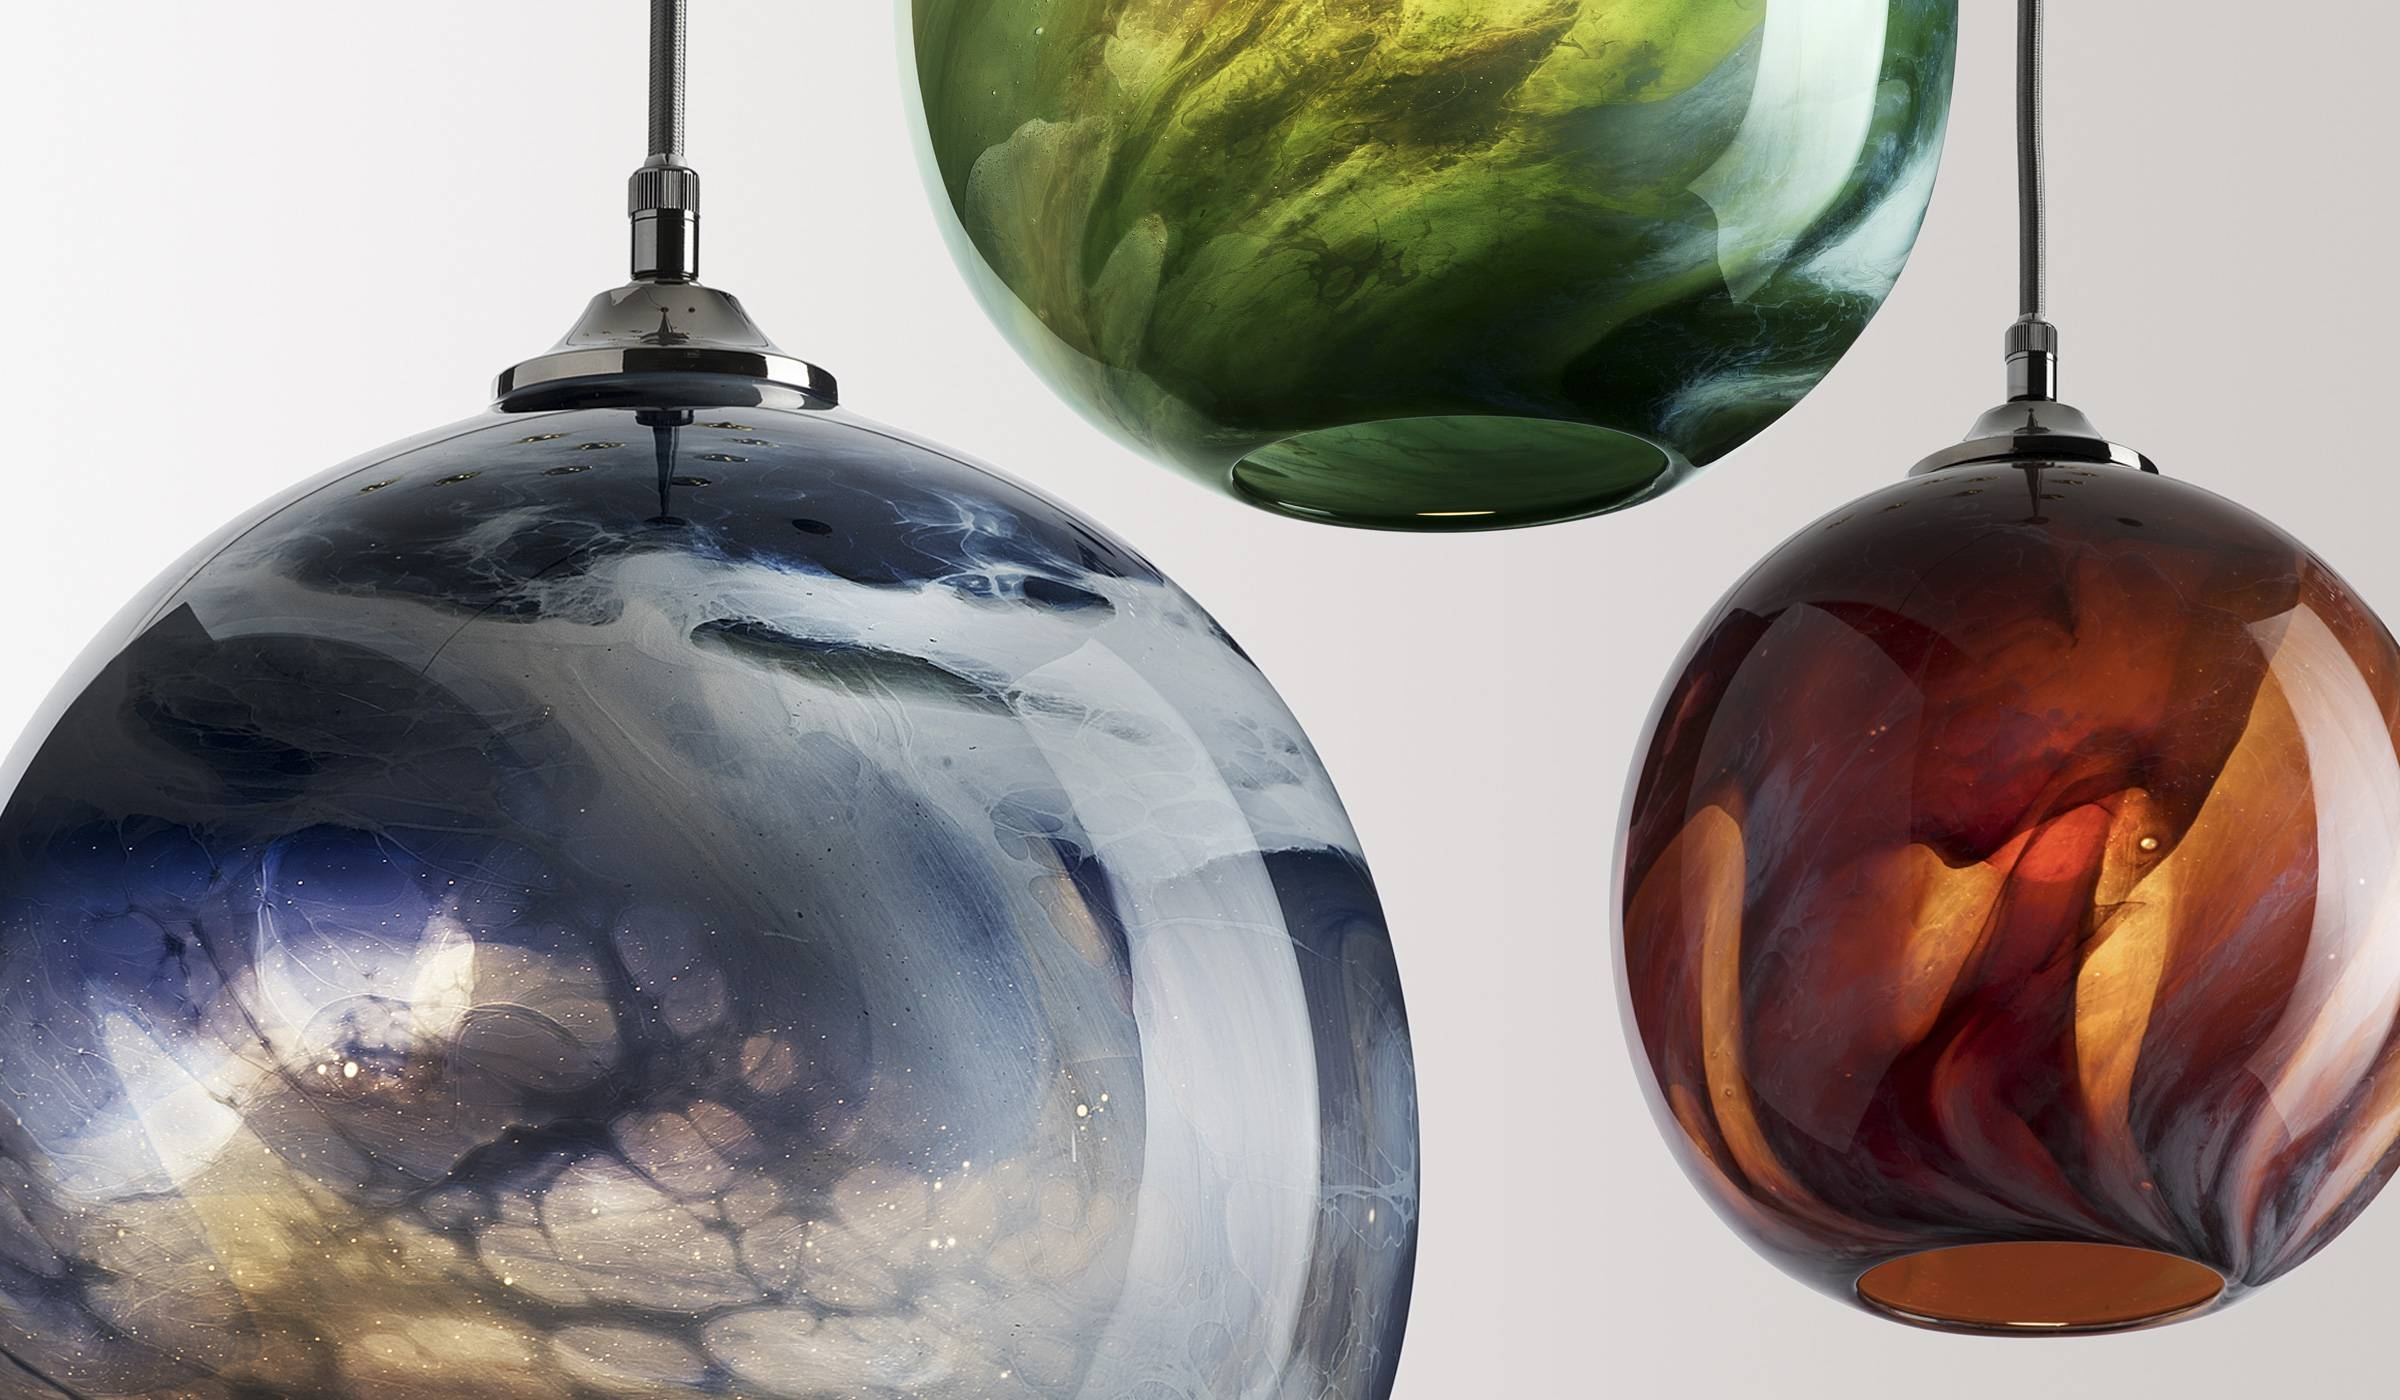 Glass Lighting - Rothschild & Bickers pertaining to Hand Blown Glass Pendant Lights Australia (Image 7 of 15)